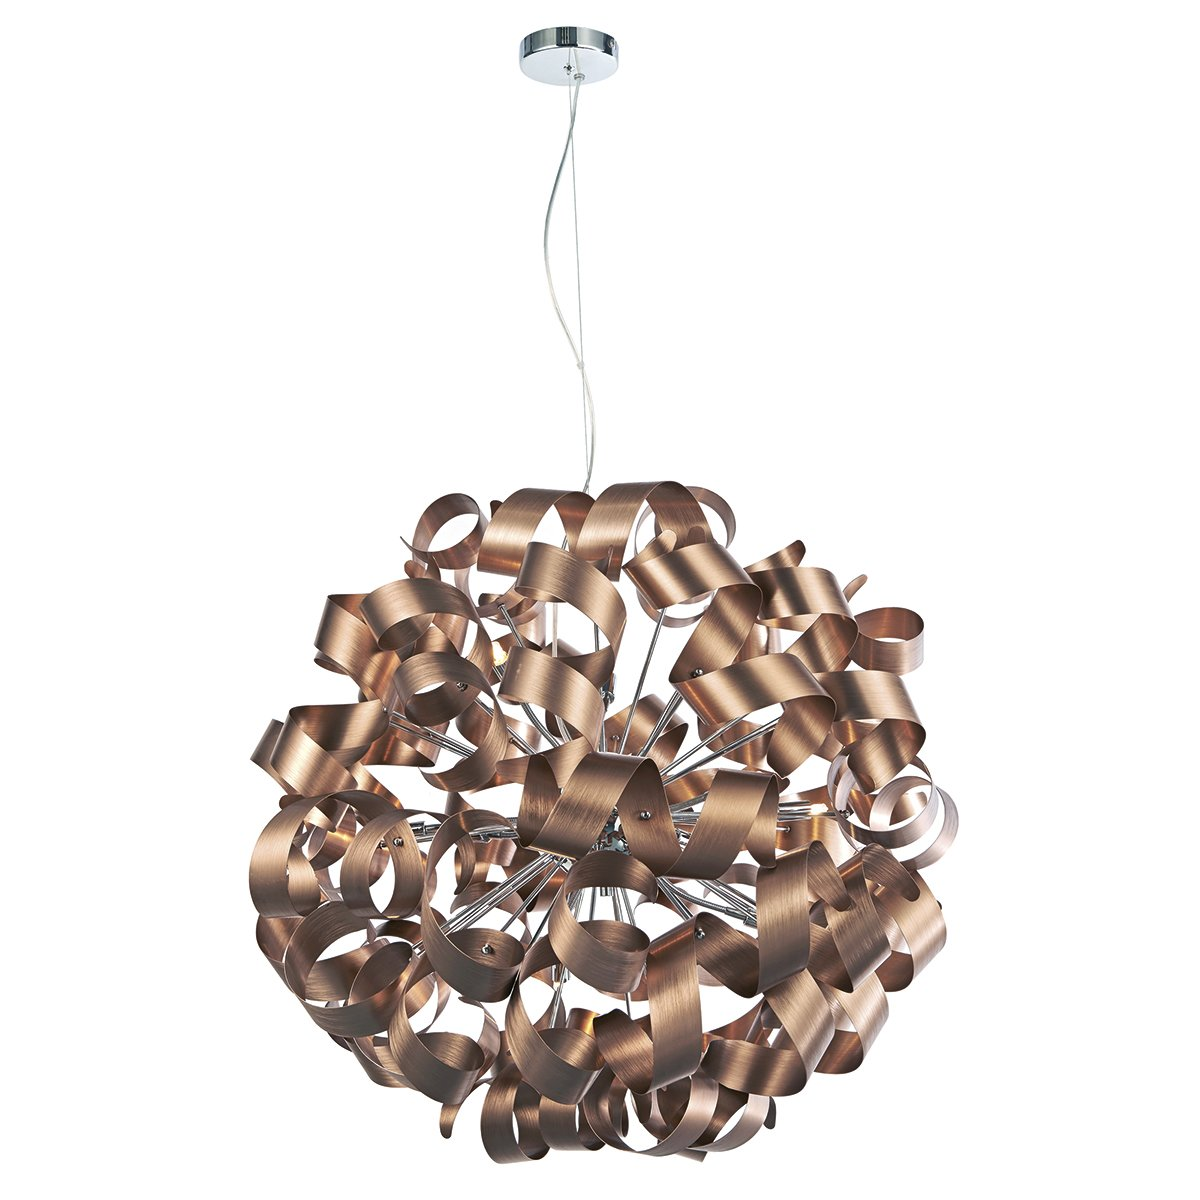 Dar RAW1264 Rawley 12 Light Ball Pendant in Brushed Satin Copper